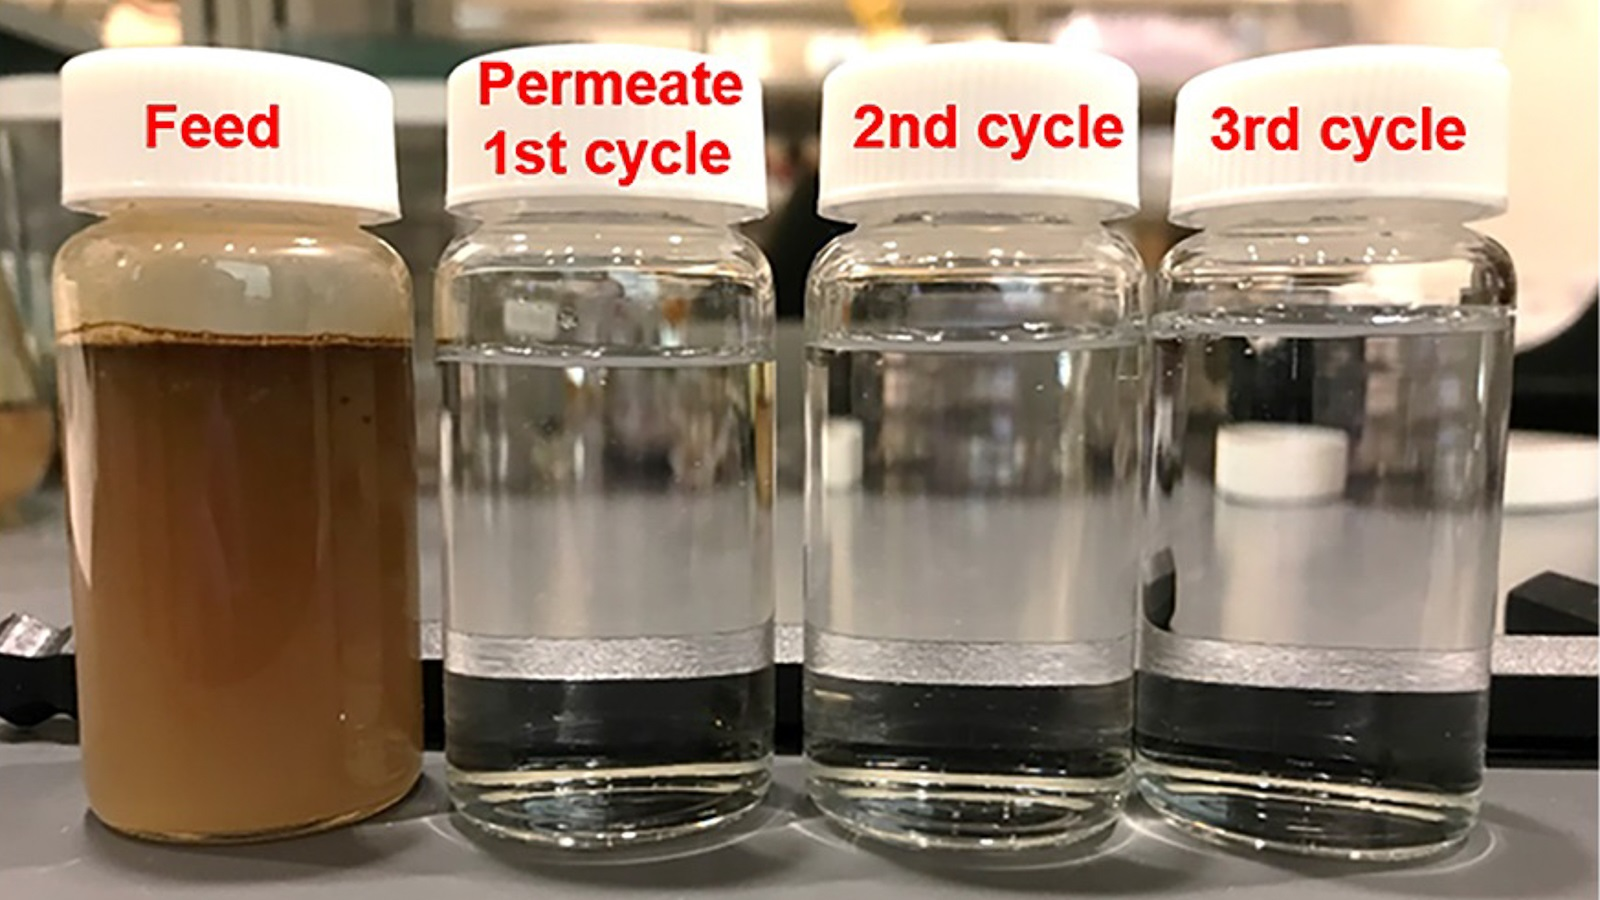 Crude-oil-in-water feed in its initial state and the clean permeate that comes out after passing through the ALD-treated membrane, a process that was performed three successive times. The membrane was simply rinsed by water after every cycle of filtration. (Image by Argonne National Laboratory.)